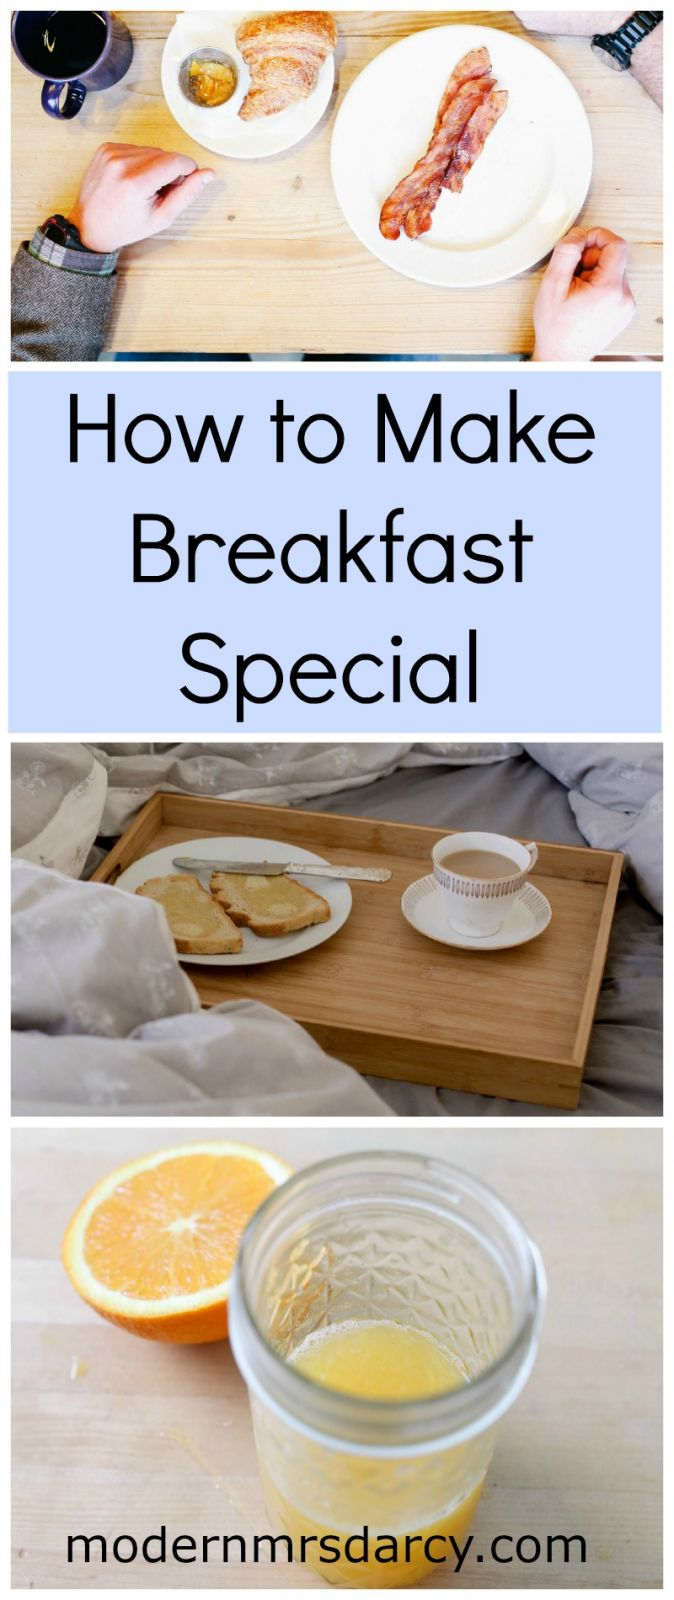 How to Make Breakfast Special